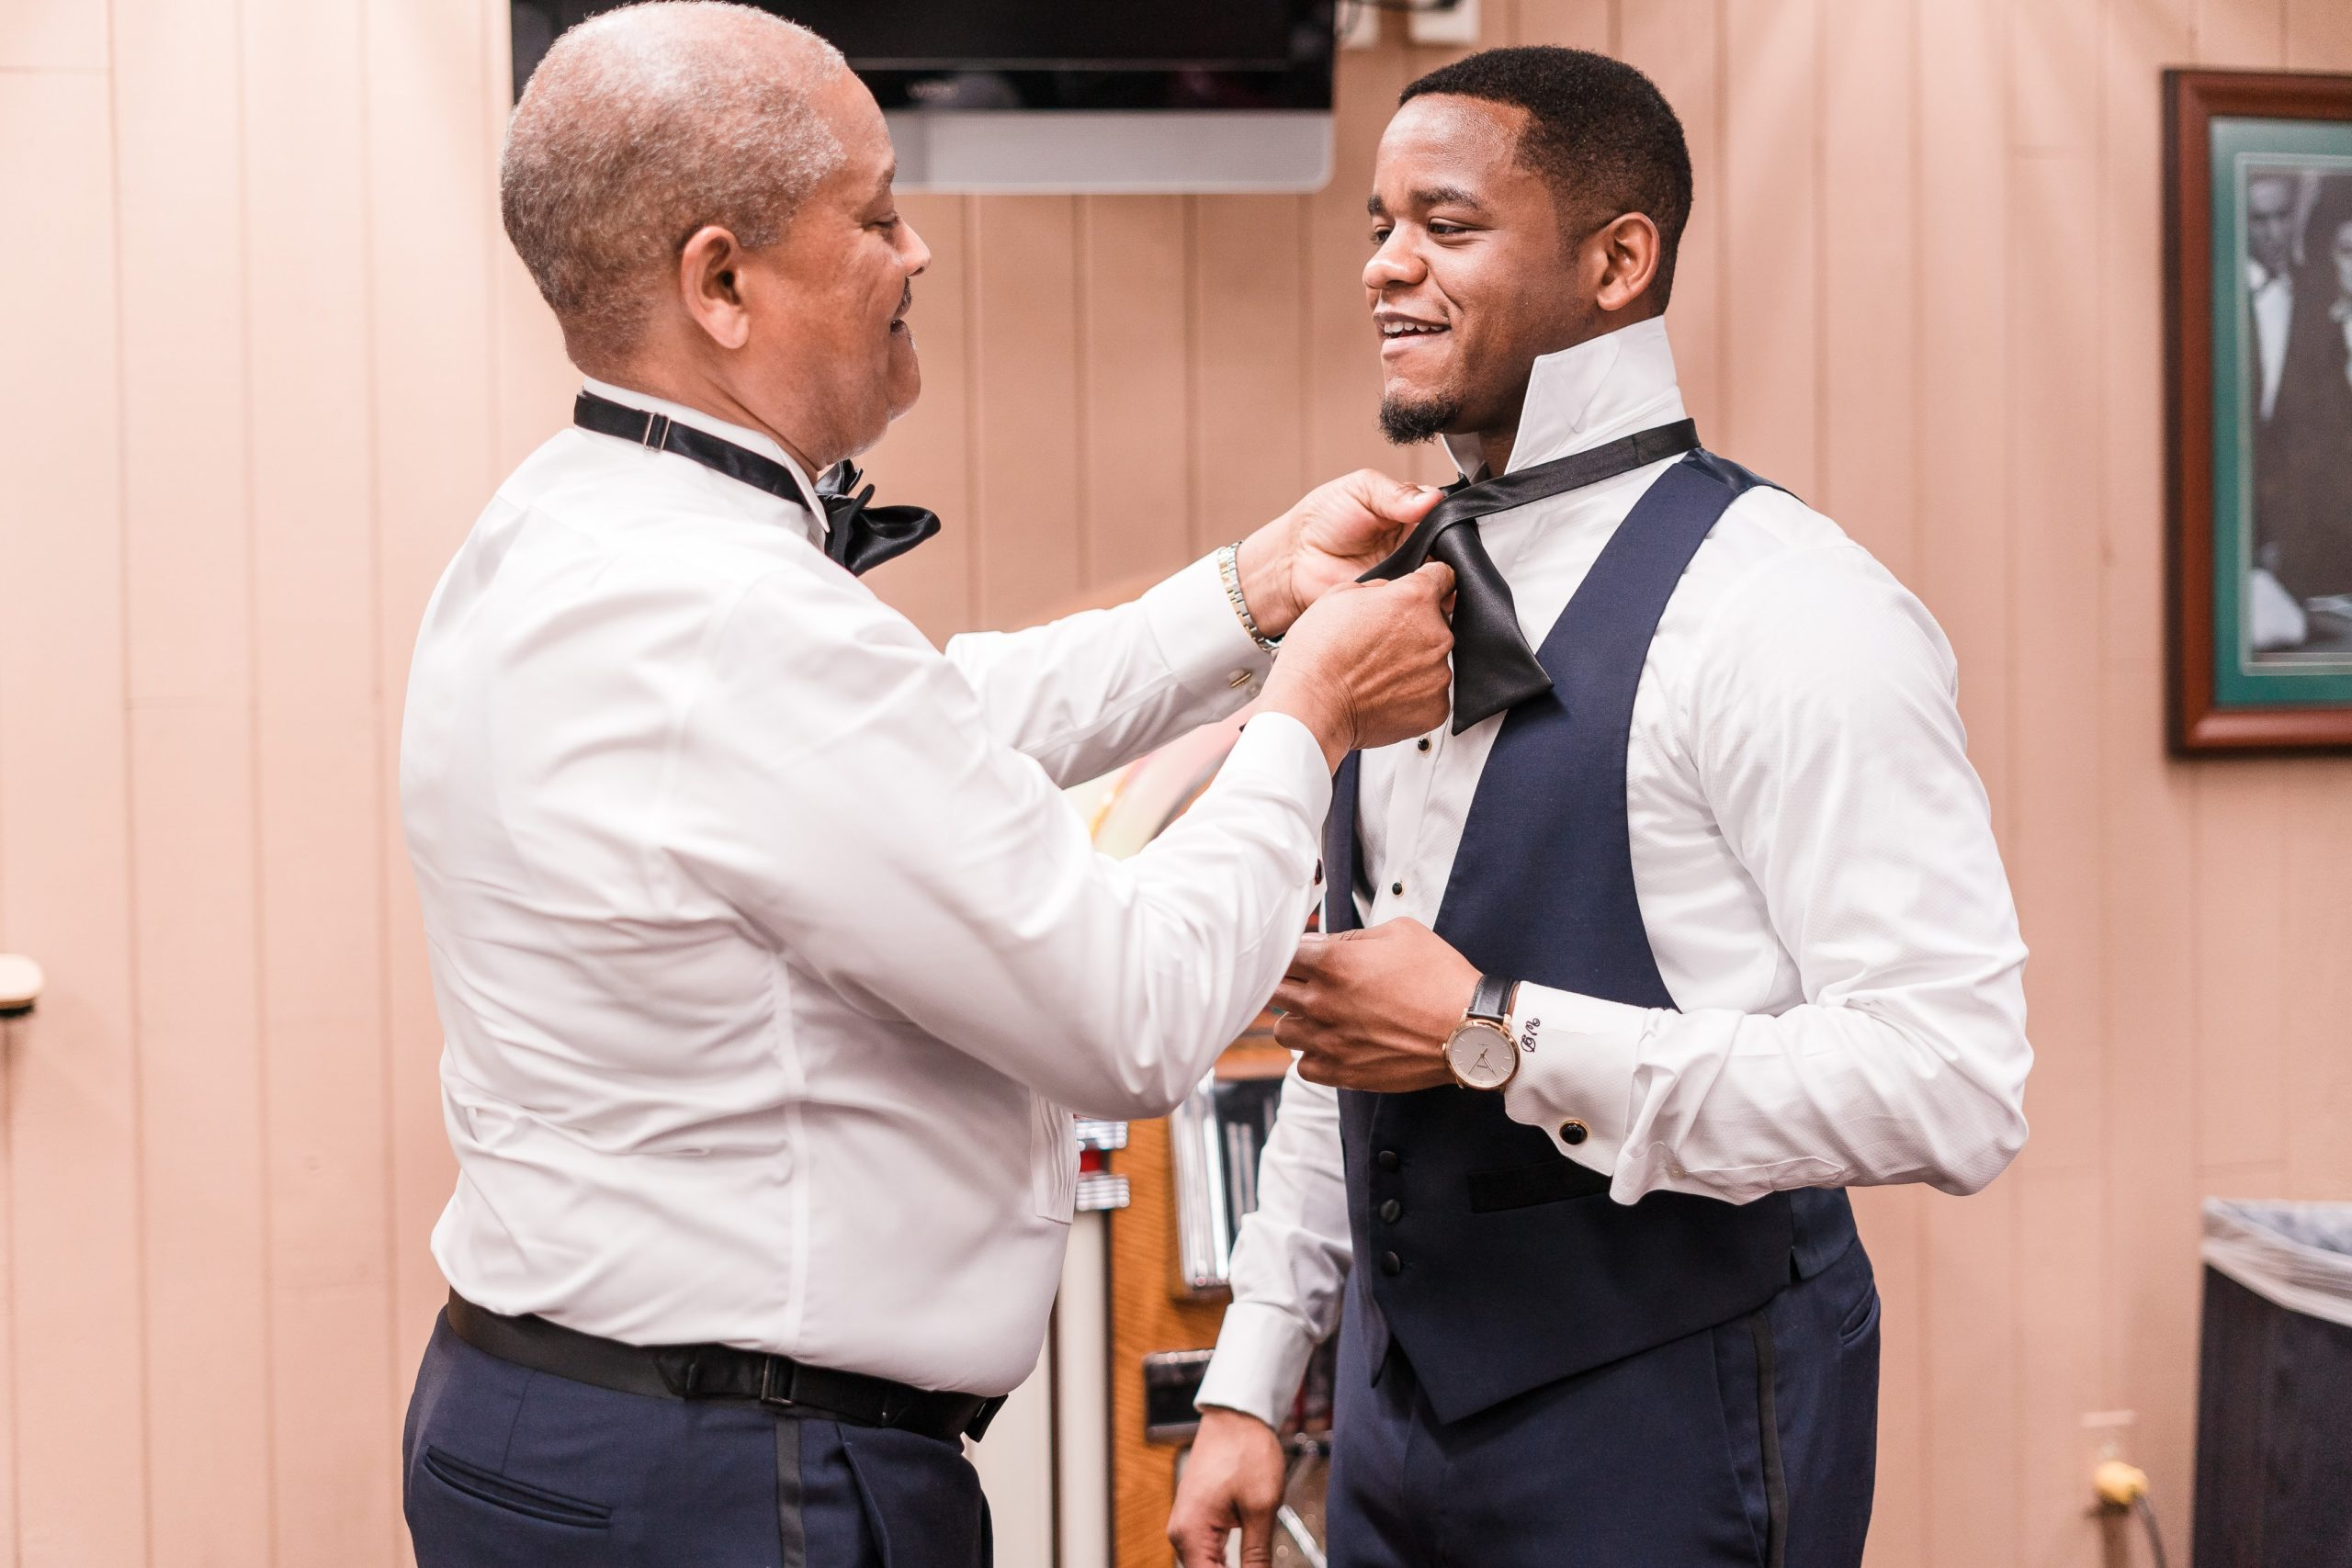 Adjusting the grooms bowtie